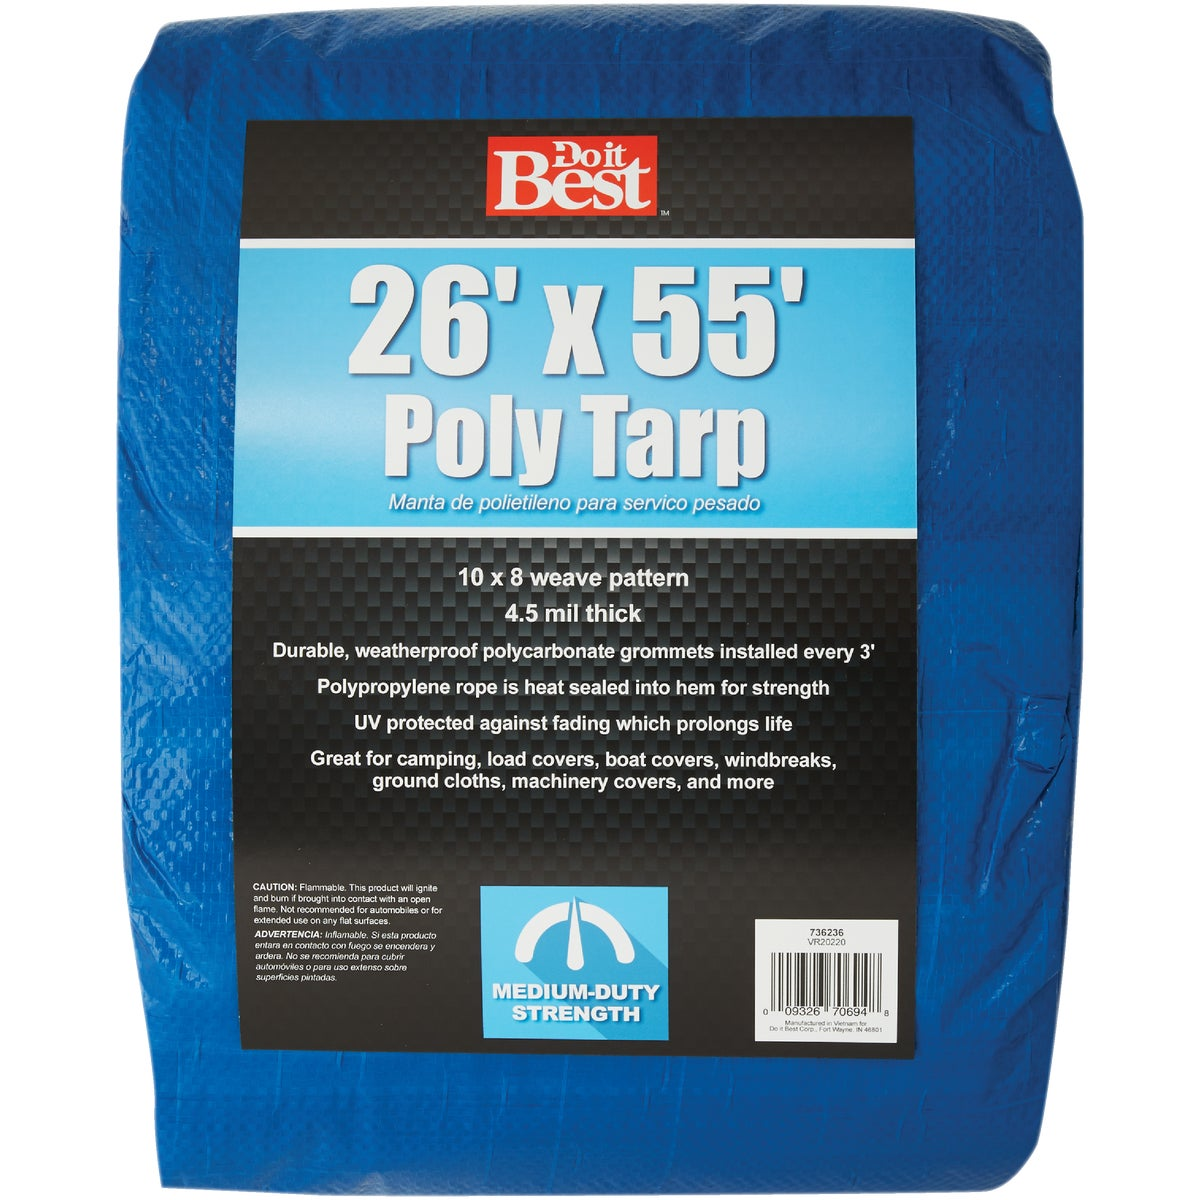 26X55 BLUE MED DUTY TARP - 736236 by Do it Best